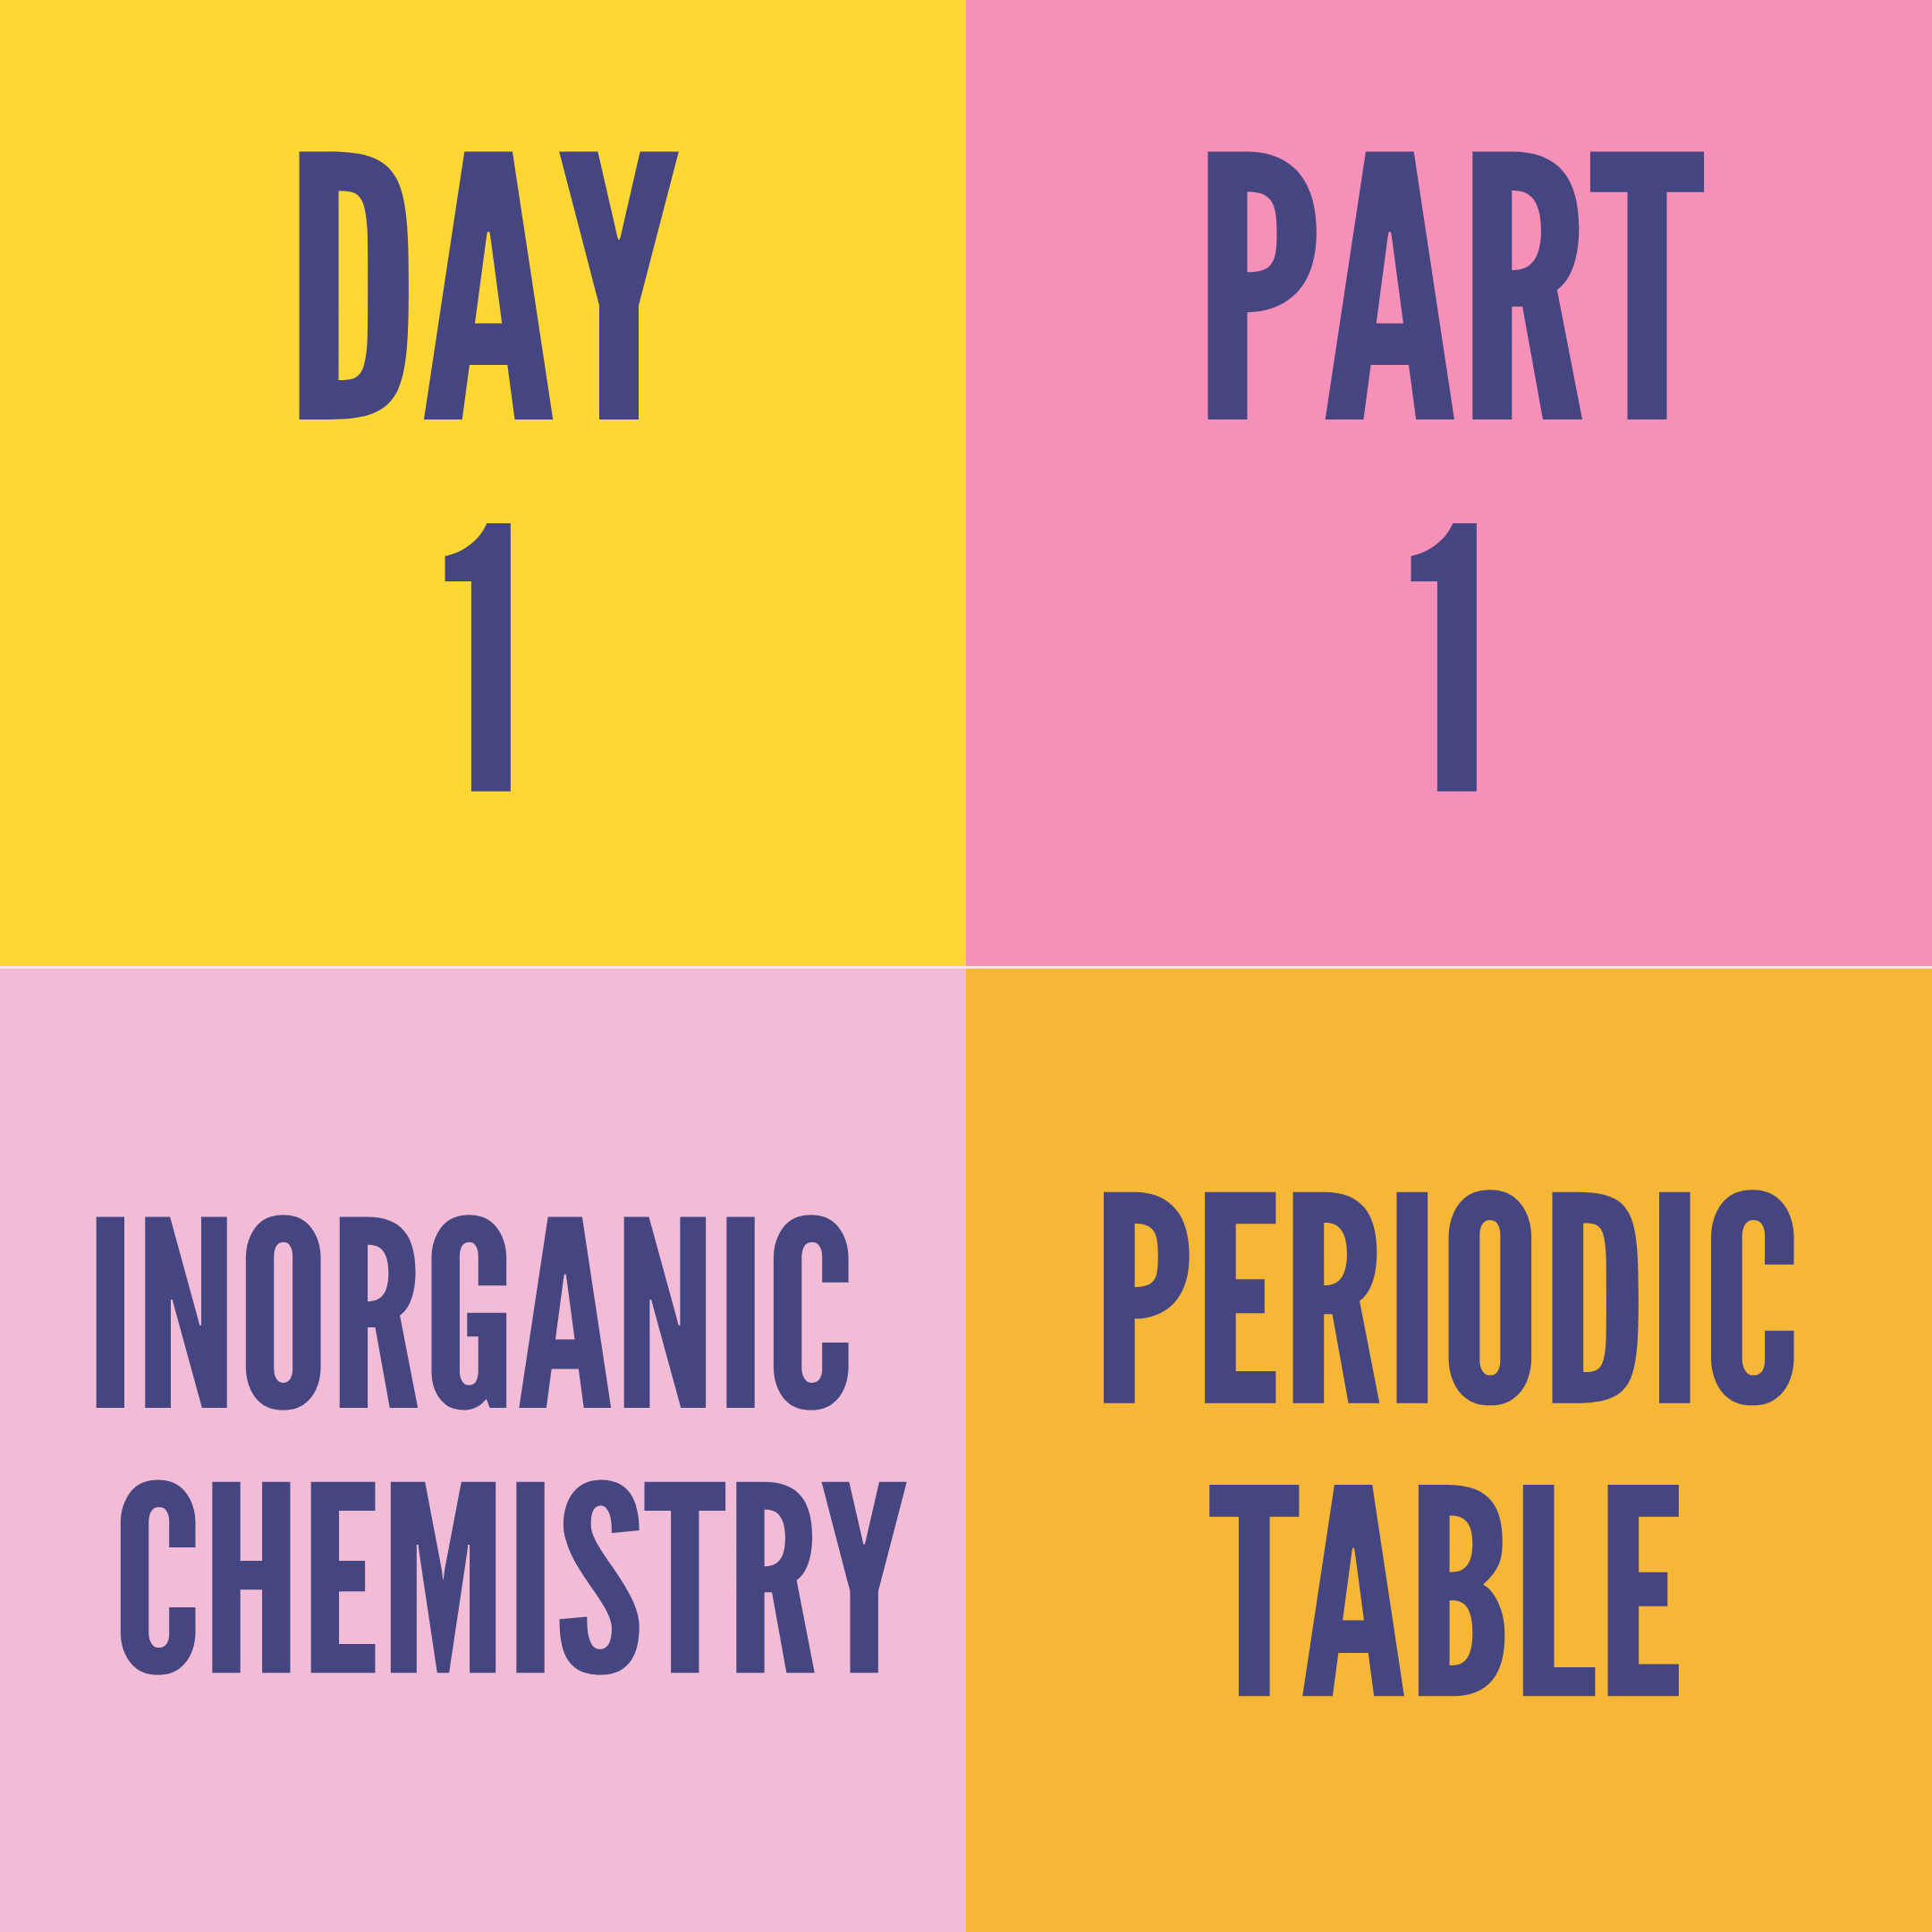 DAY-1 PART-1 PERIODIC TABLE